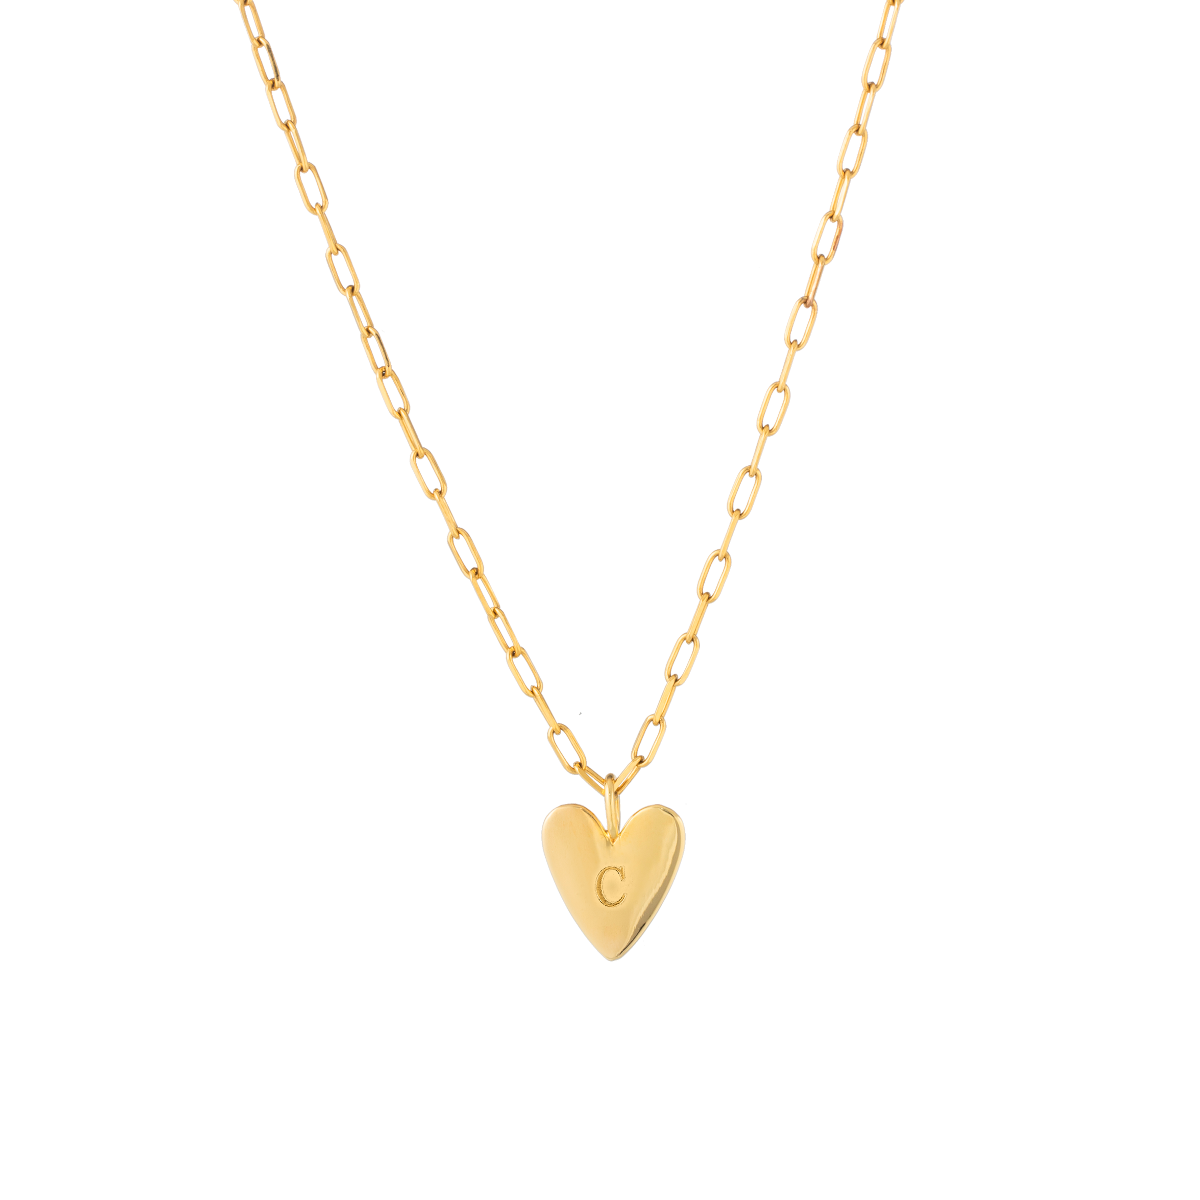 Holly Heart Initial Necklace